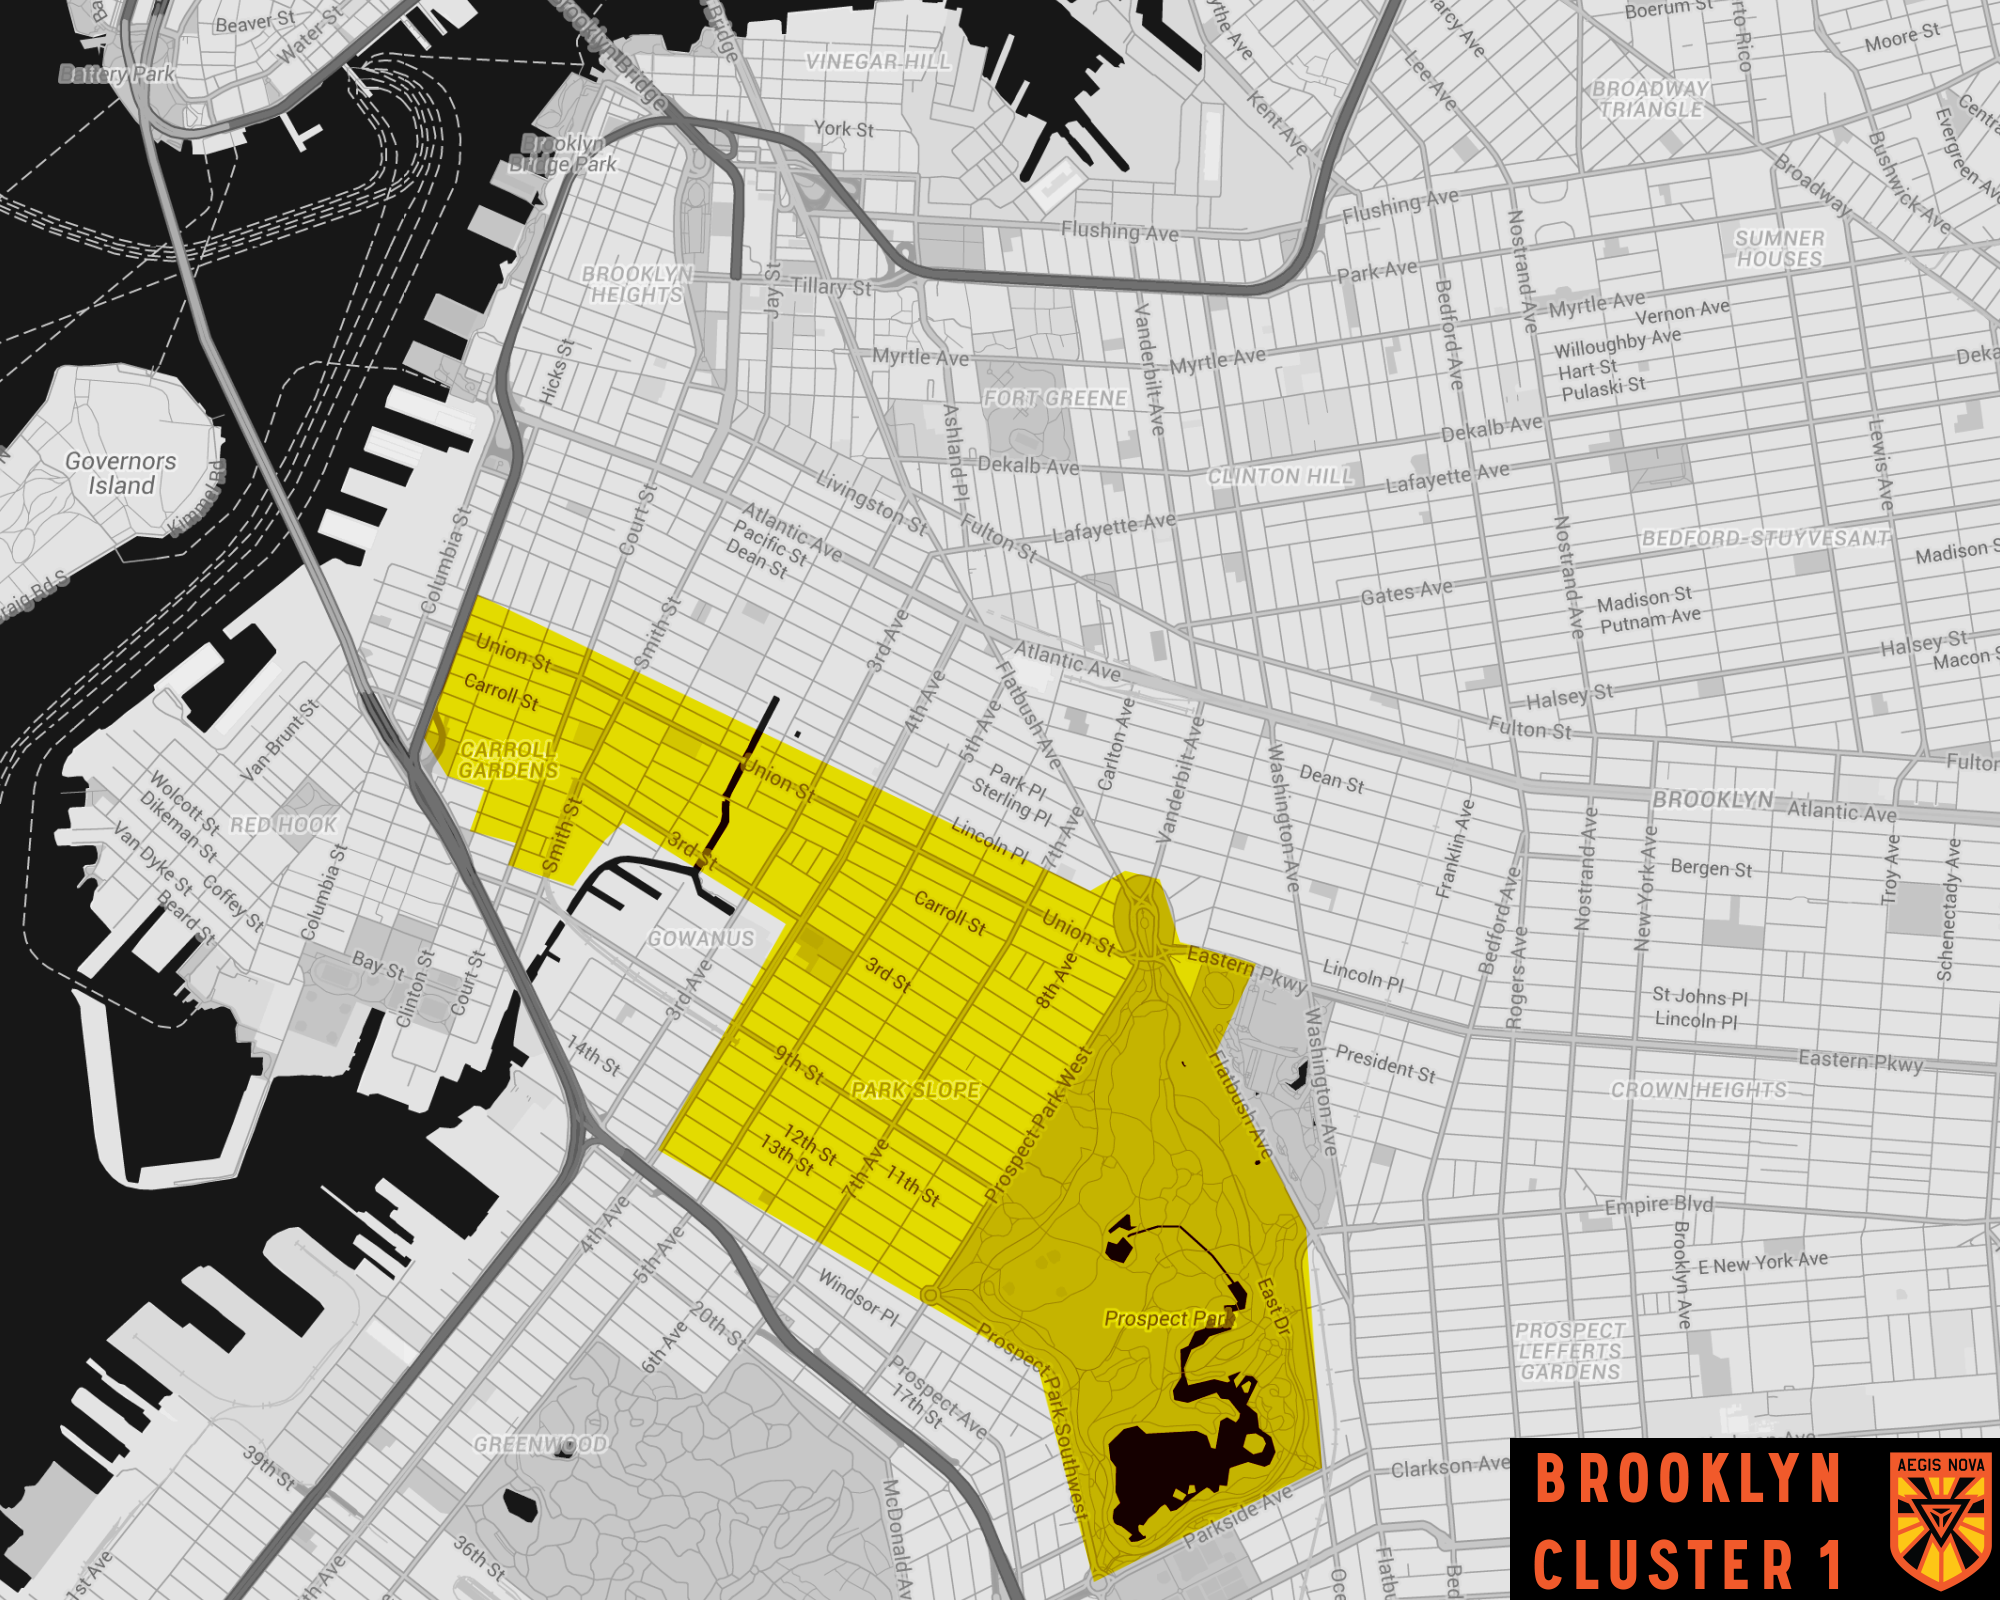 BrooklynCluster1.png